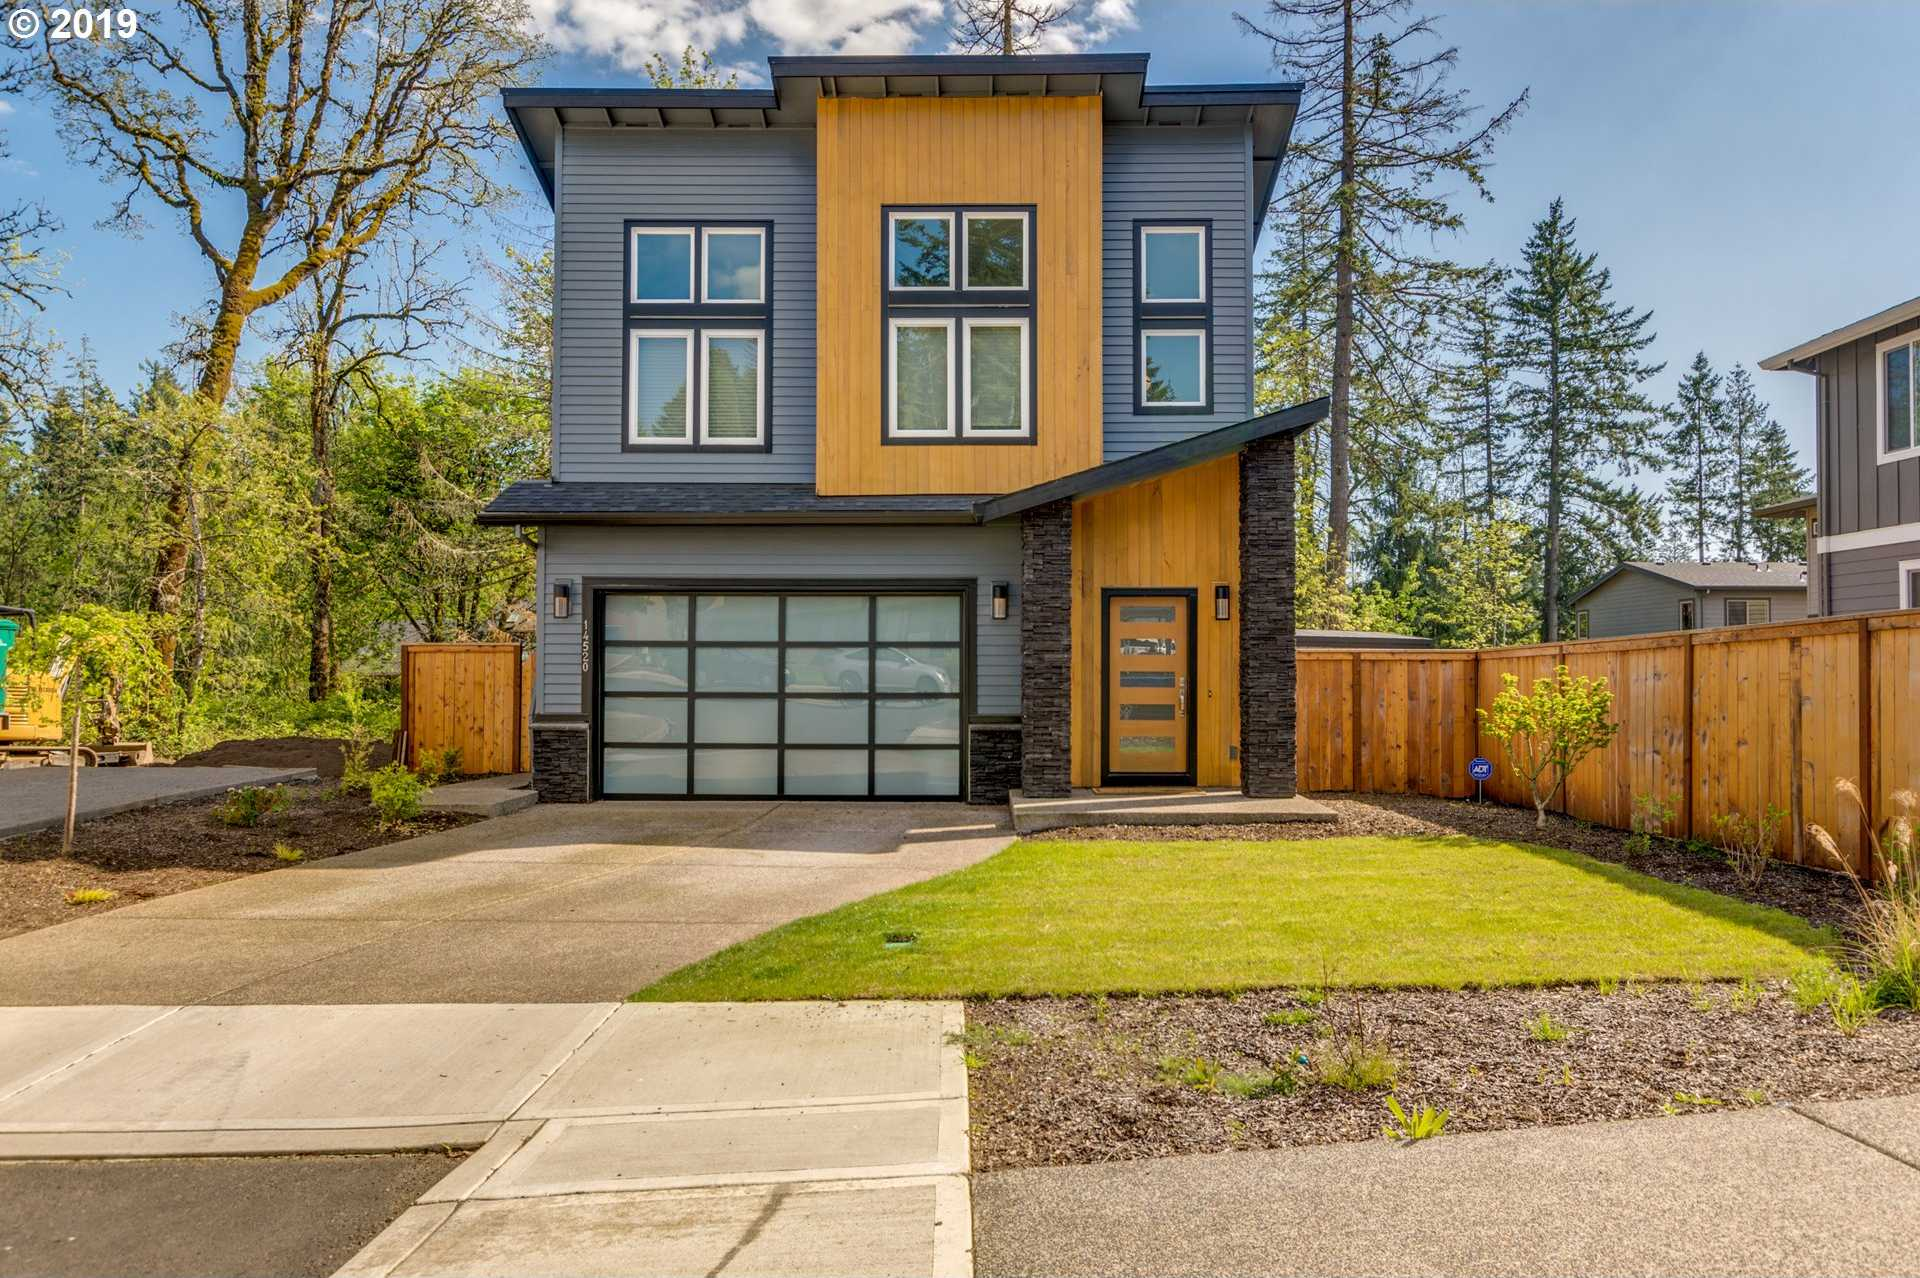 $530,000 - 3Br/3Ba -  for Sale in Clackamas